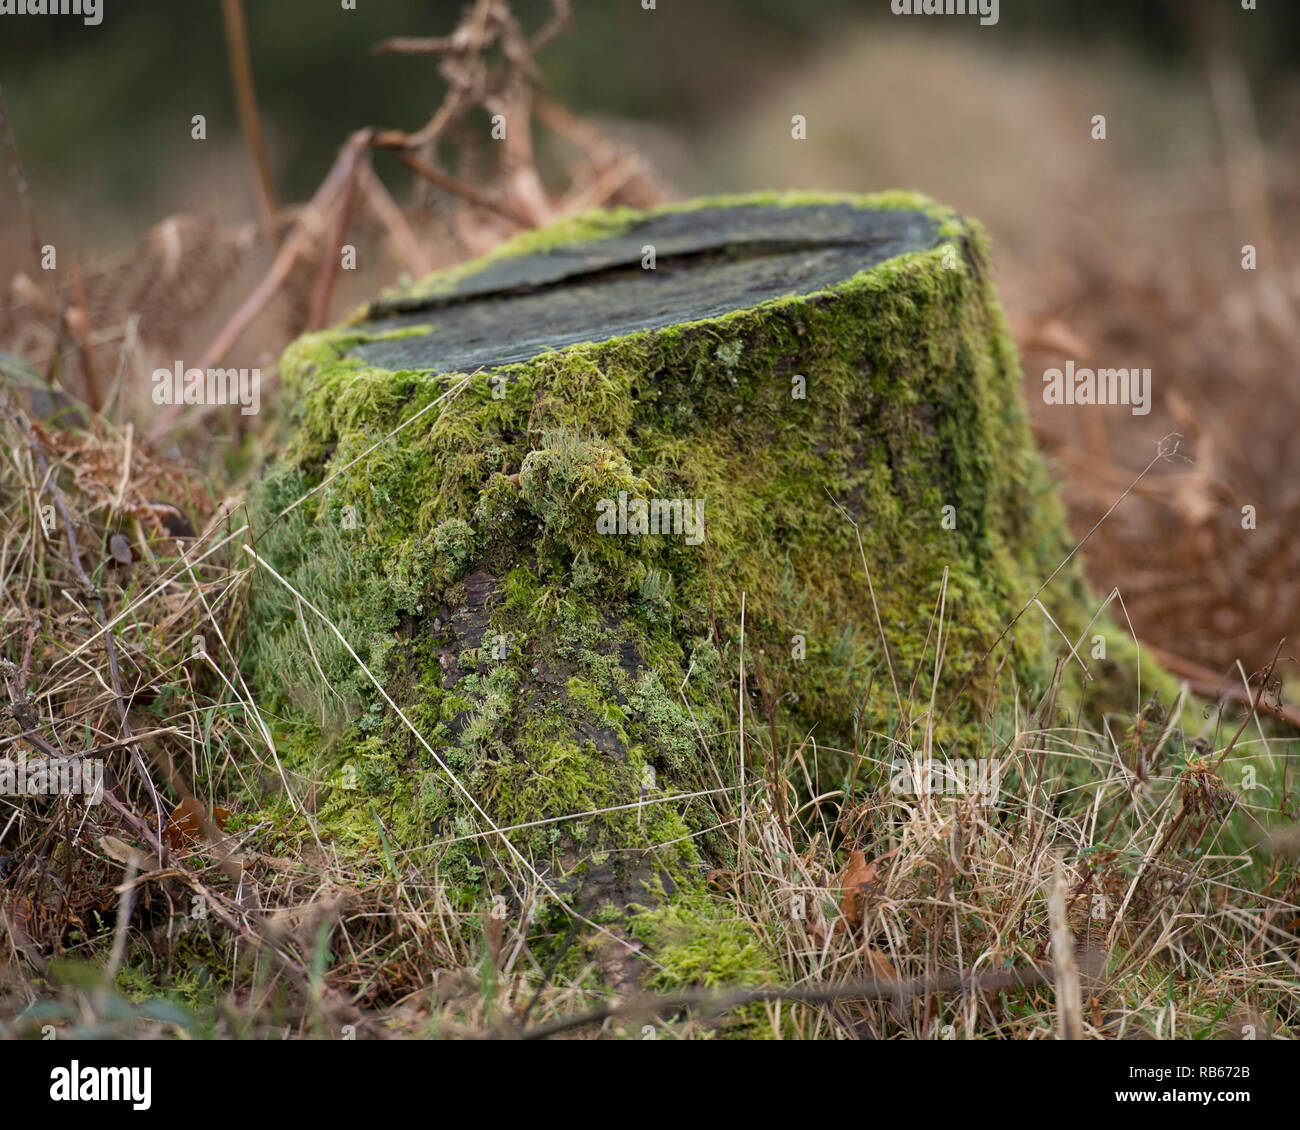 tree stump with moss - Stock Image